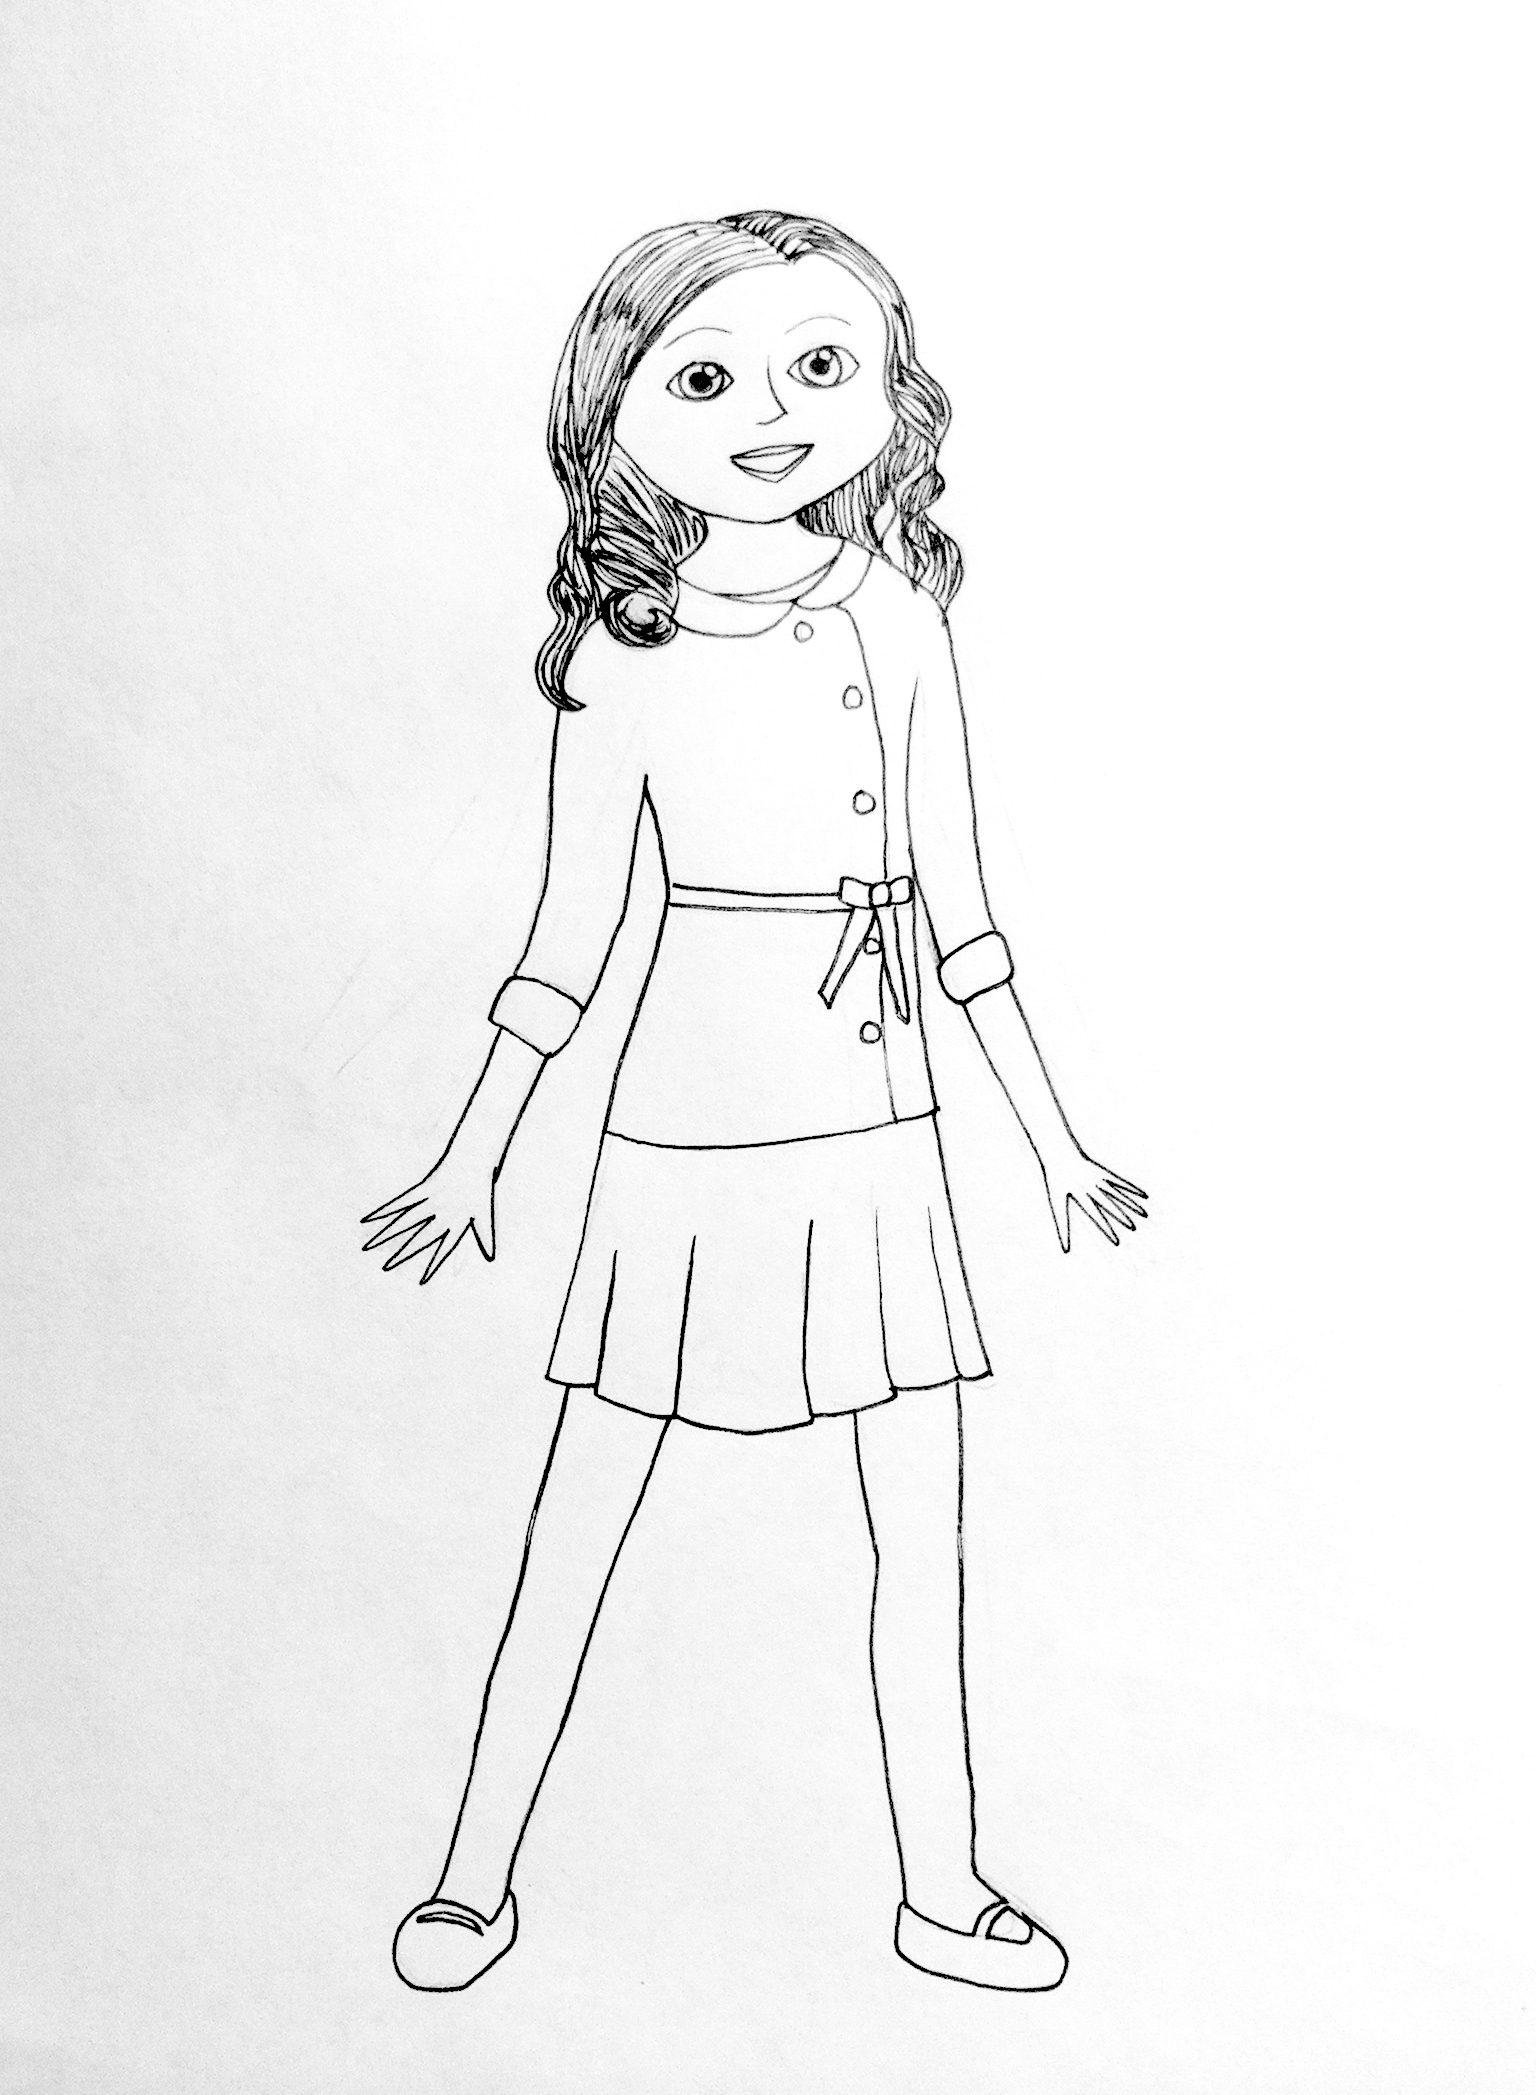 pictures of american girl dolls to color pictures of american girl dolls to color dolls to girl color of pictures american